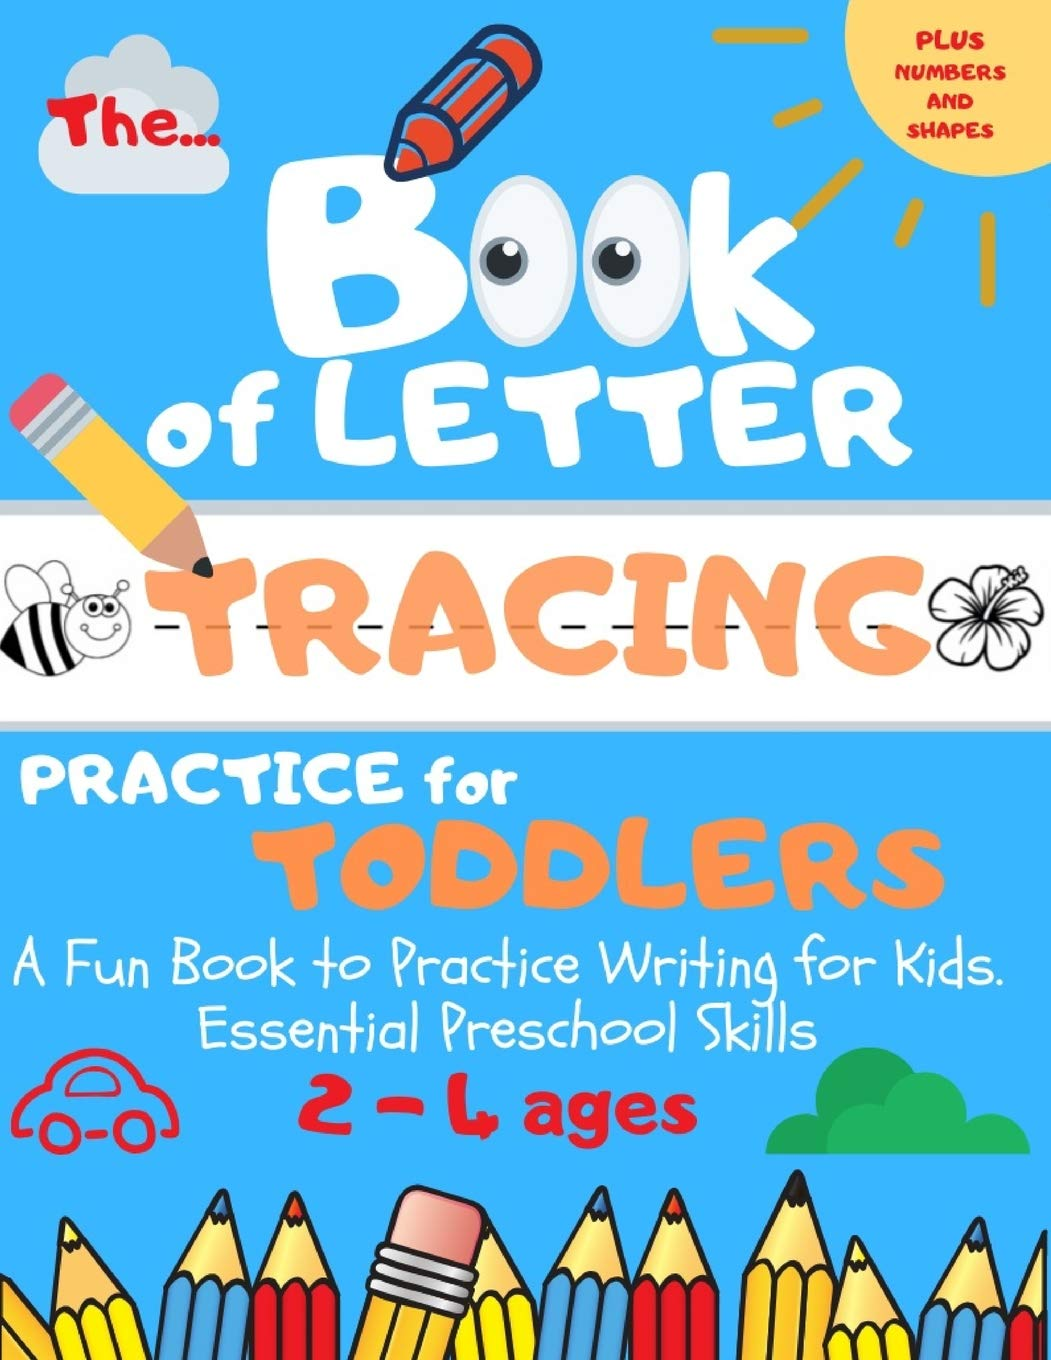 Activity Book To Number Writing Practice For Preschoolers 3+ Extra Large 8.5 x 11 Number Tracing Book For Preschoolers Number Tracing Practice Learn 0 to 10